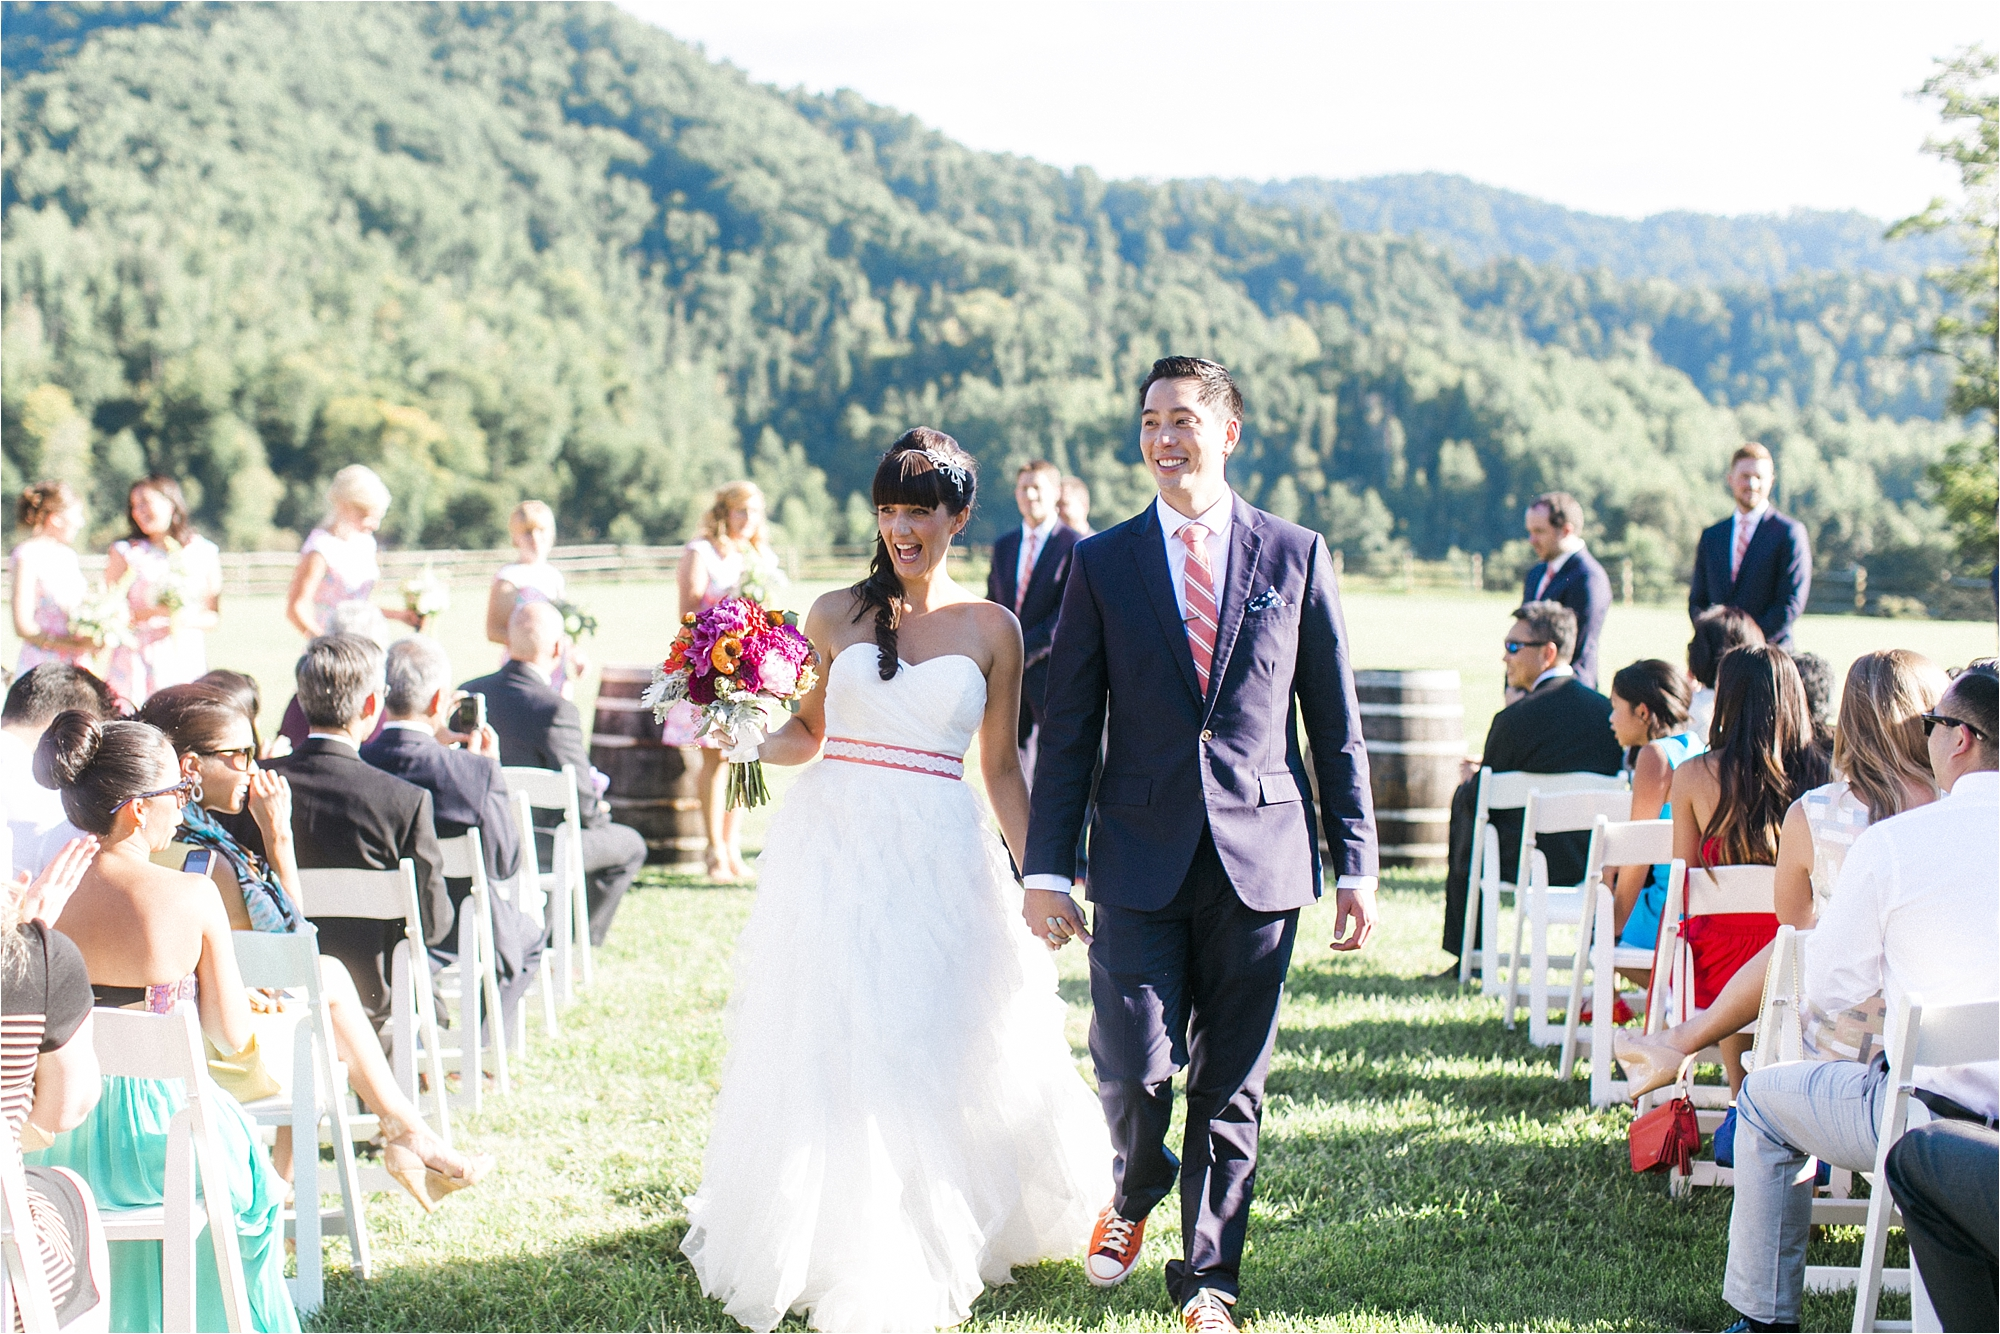 alyssa-pascal-claxton-farms-asheville-north-carolina-wedding_0020.JPG